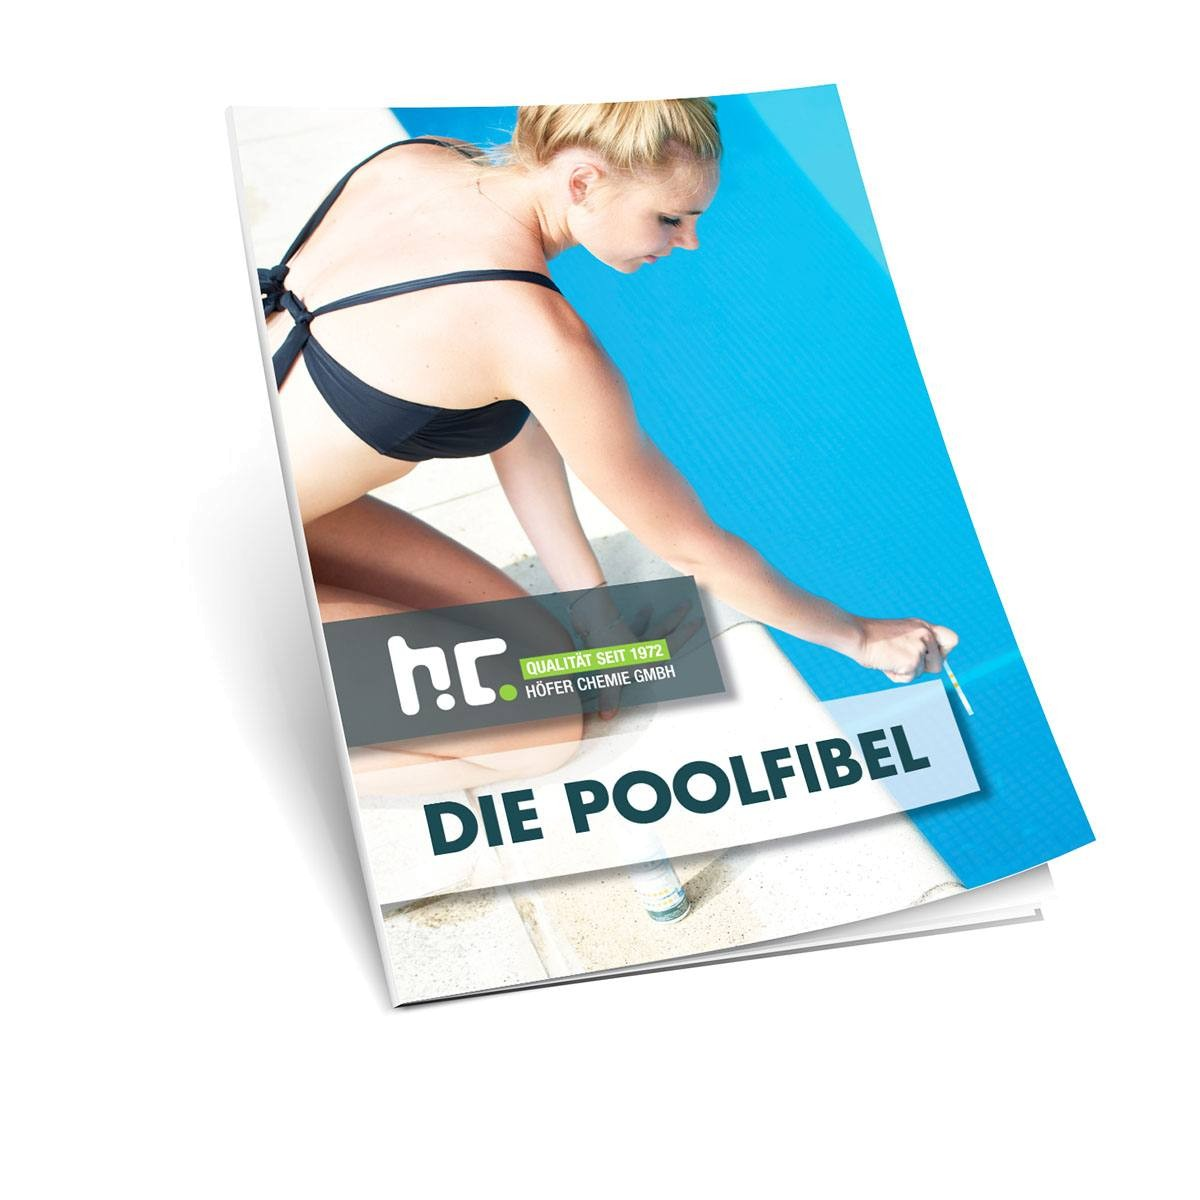 Poolfibel